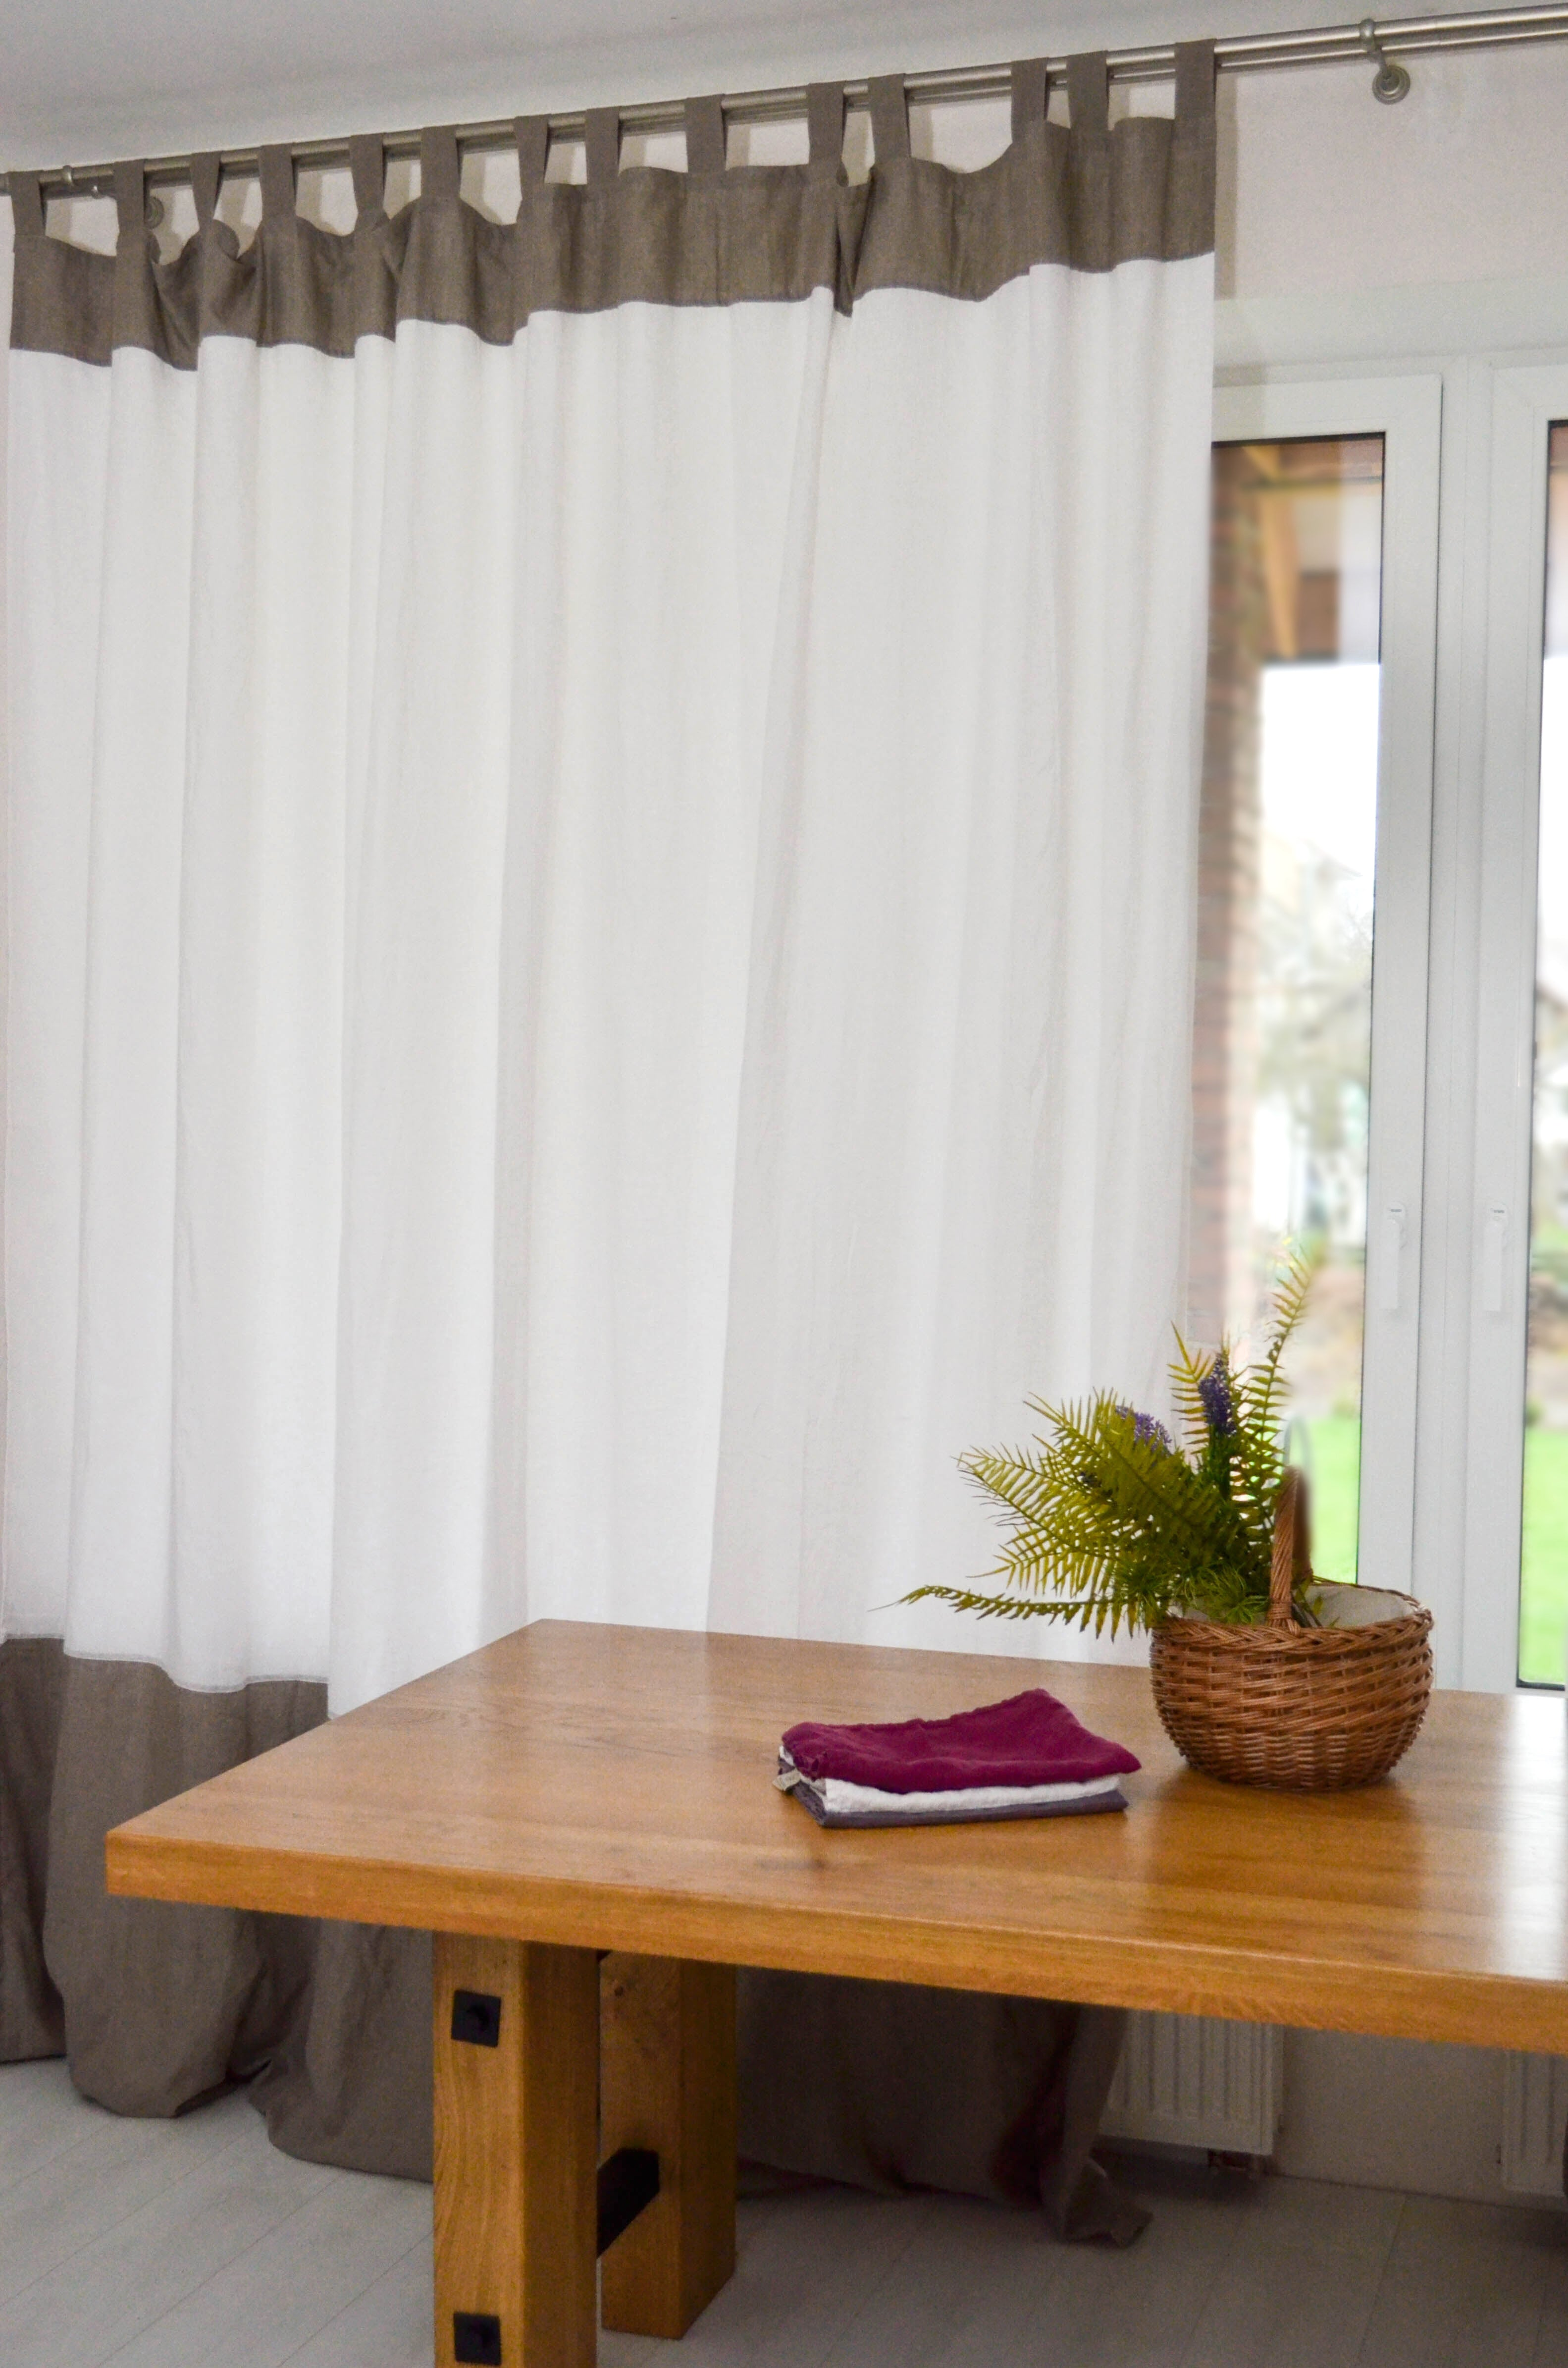 Color Block Linen Curtain with Cotton Lining - Tab Top Panel in Two Colors - Window or Door Drapes in Custom Size